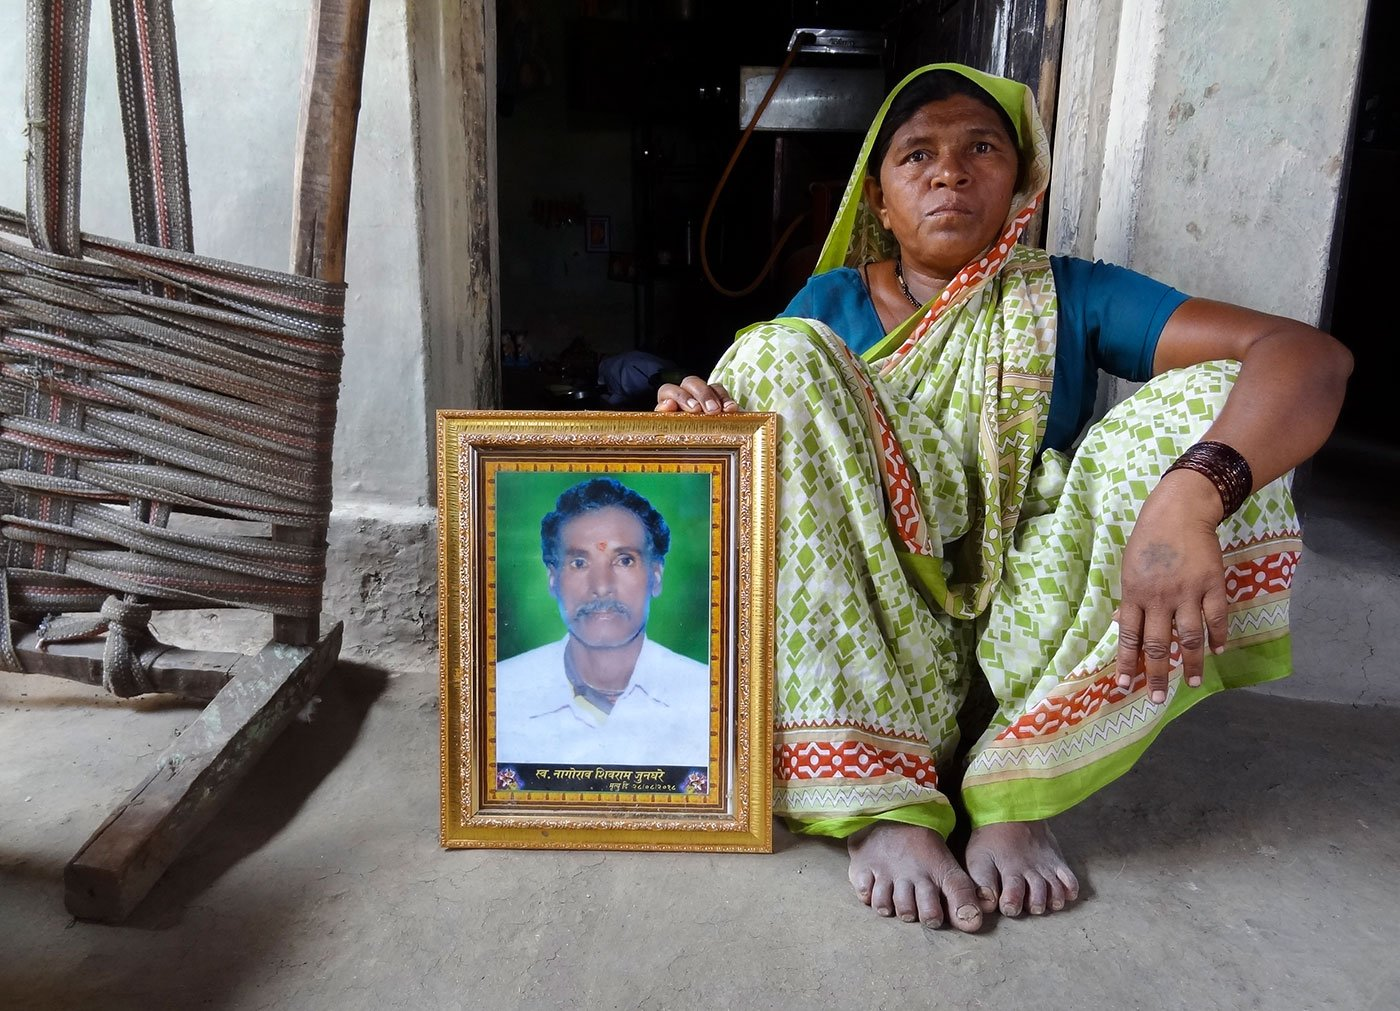 T1's last victim on August 28, 2018, was Nagorao Junghare, a farmer and herder in Pimpalshenda village that falls in Kalamb tehsil along the Ralegaon tehsil's border in Yavatmal district. His widow, Renukabai, is still to come to terms with her husband's death in T1's attack. She's at their hut here.